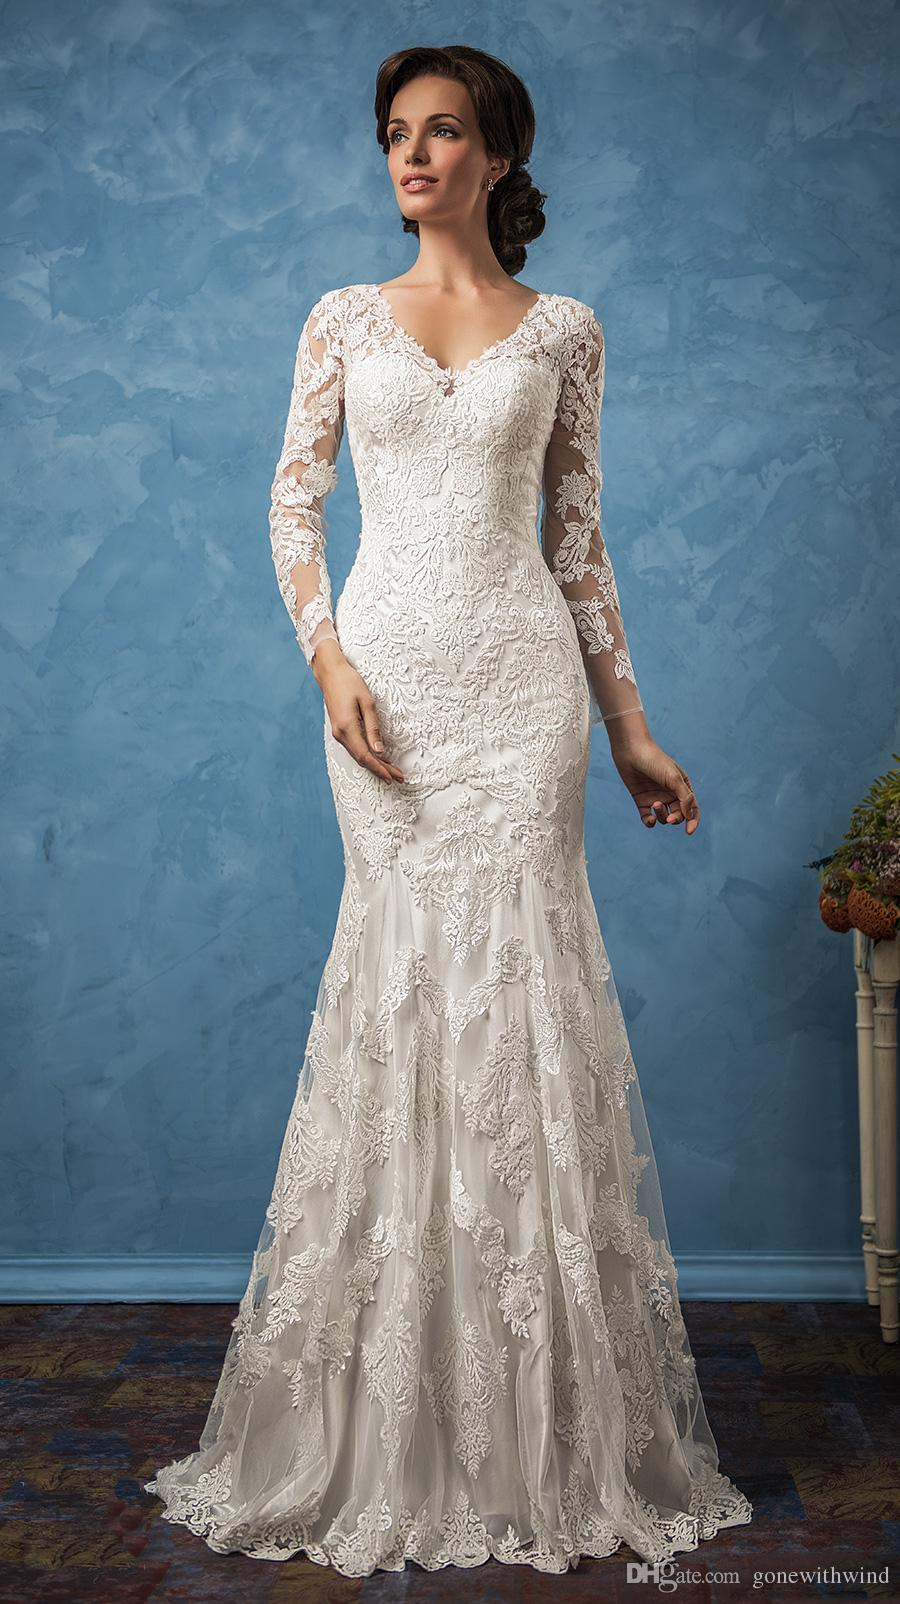 Long Sleeve Vintage Lace Wedding Dresses 2017 Amelia Sposa Bridal V ...